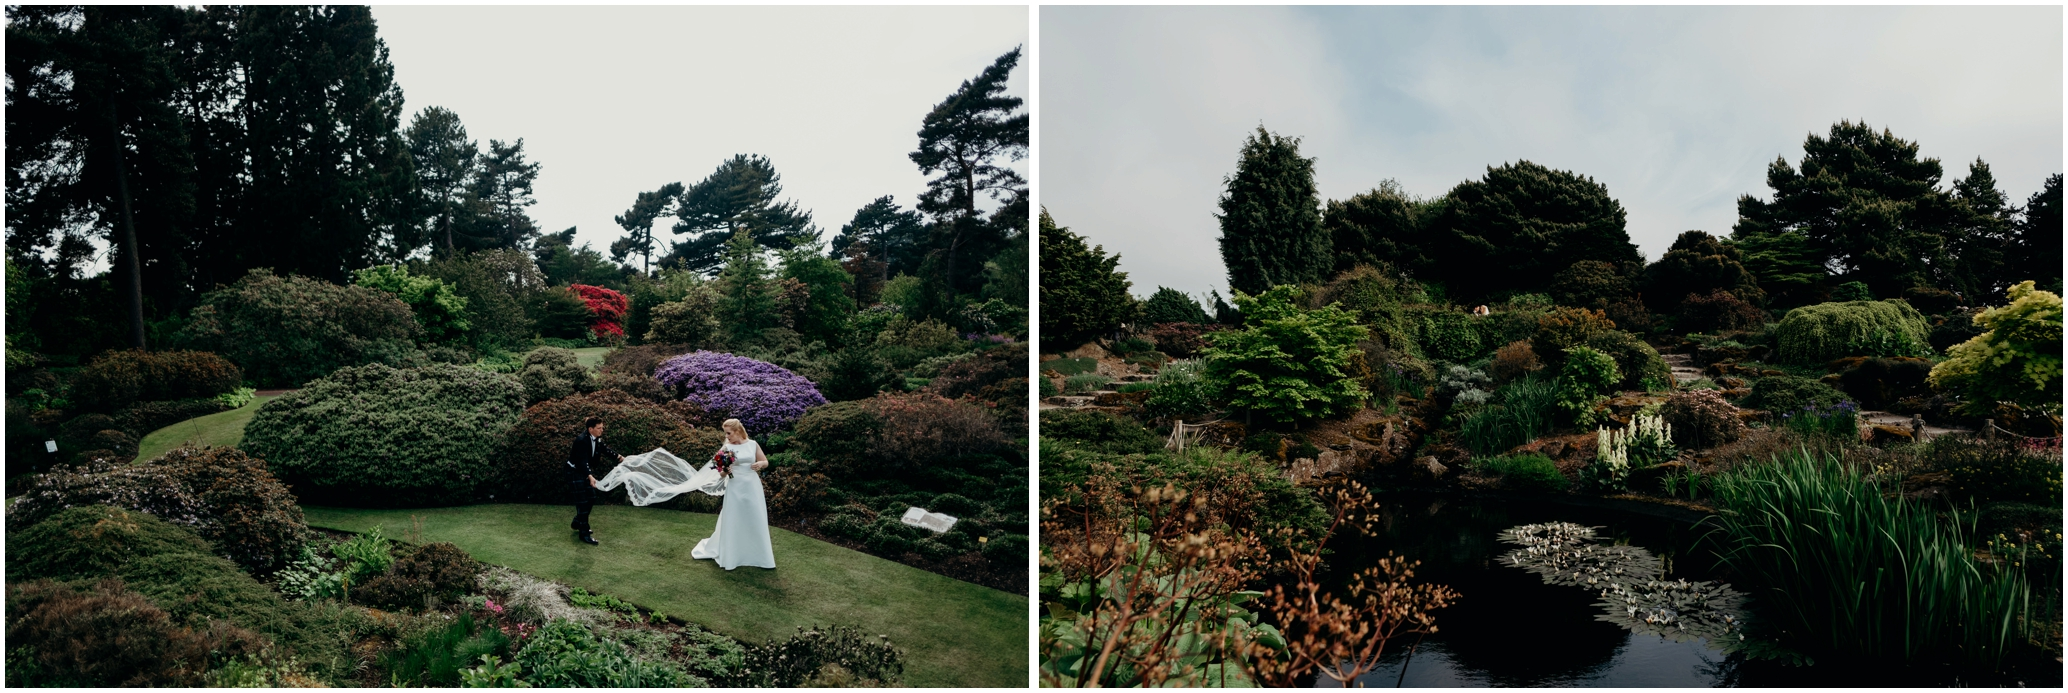 Royal Botanic Gardens Edinburgh Wedding-4_WEB.jpg